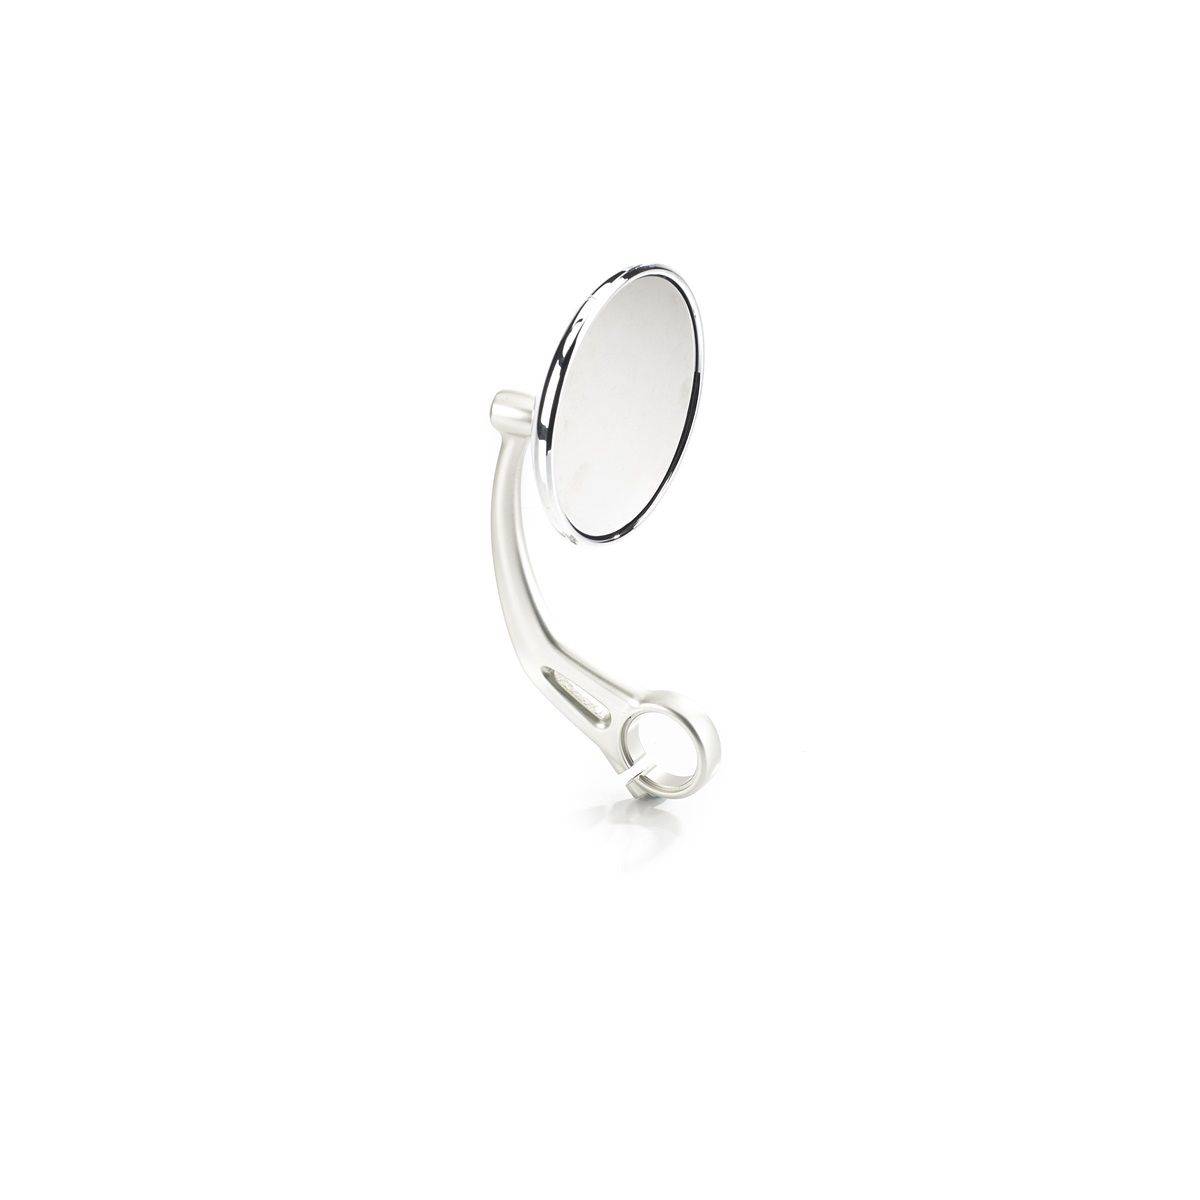 otros-triumph-bar-end-mirrors,-clear